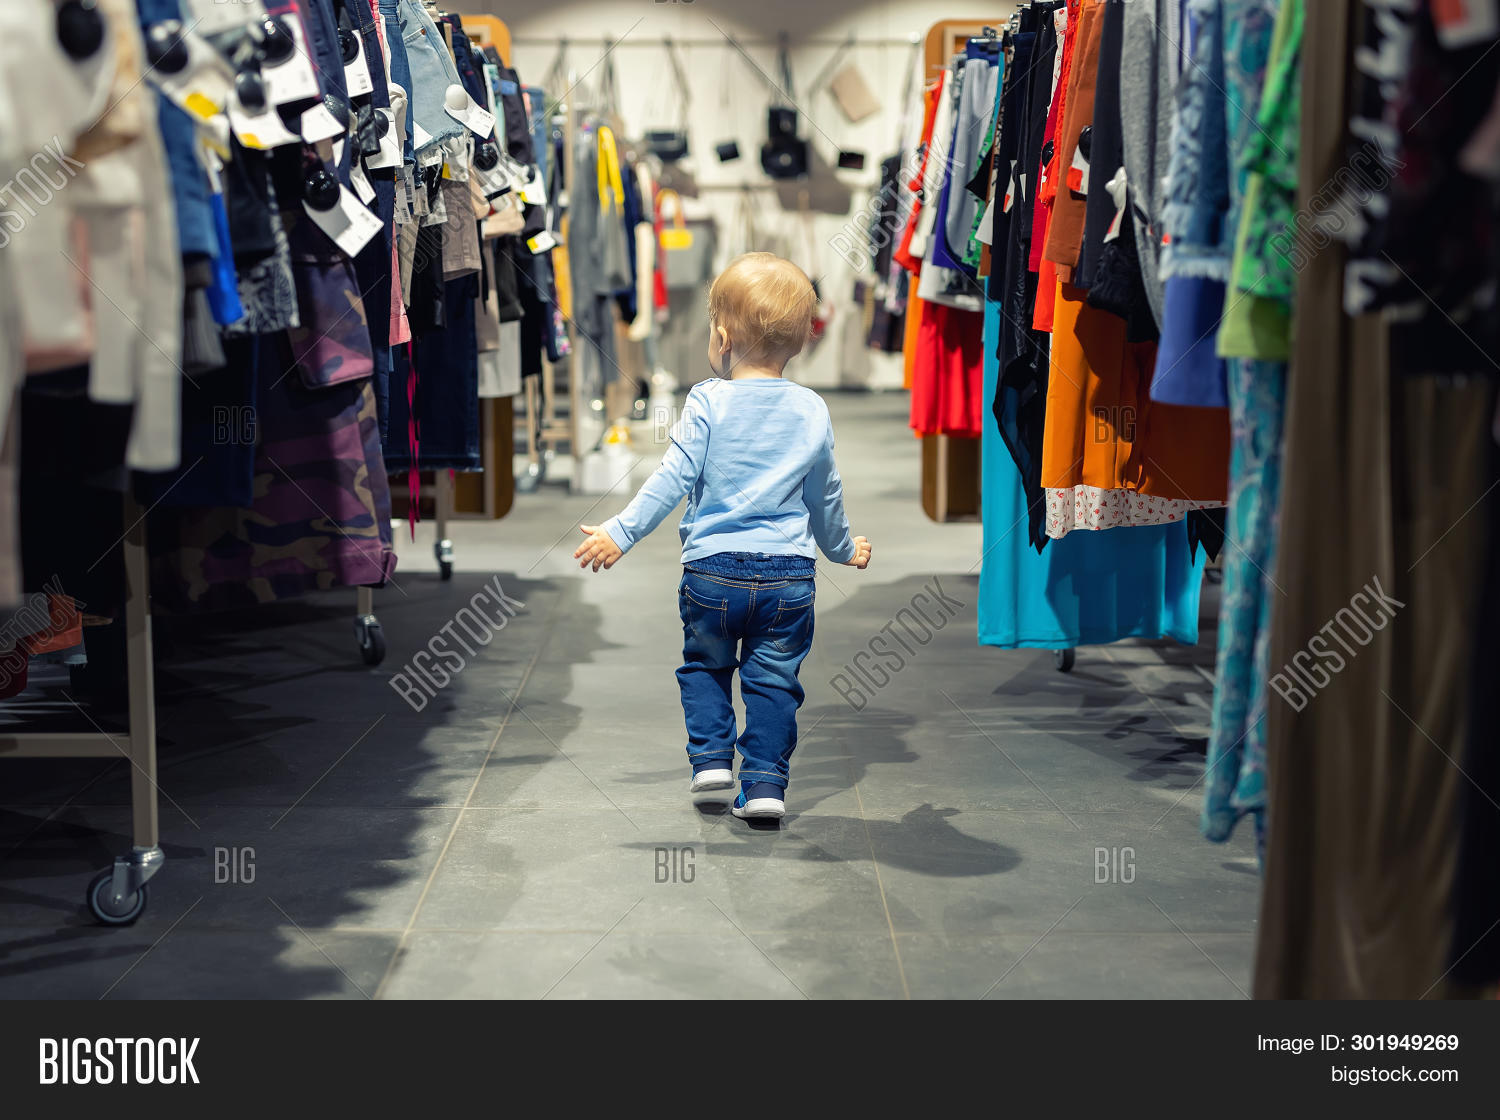 adult,alone,baby,back,blond,boutique,boy,buy,casual,caucasian,child,childhood,choosing,cloth,clothing,commerce,consumerism,customer,department,discover,fashion,get,happy,hypermarket,indoor,interior,kid,lifestyle,little,lost,mall,market,missed,one,parent,people,person,purchase,rear,retail,sale,shop,shopaholic,shopper,shopping,store,toddler,view,walking,young